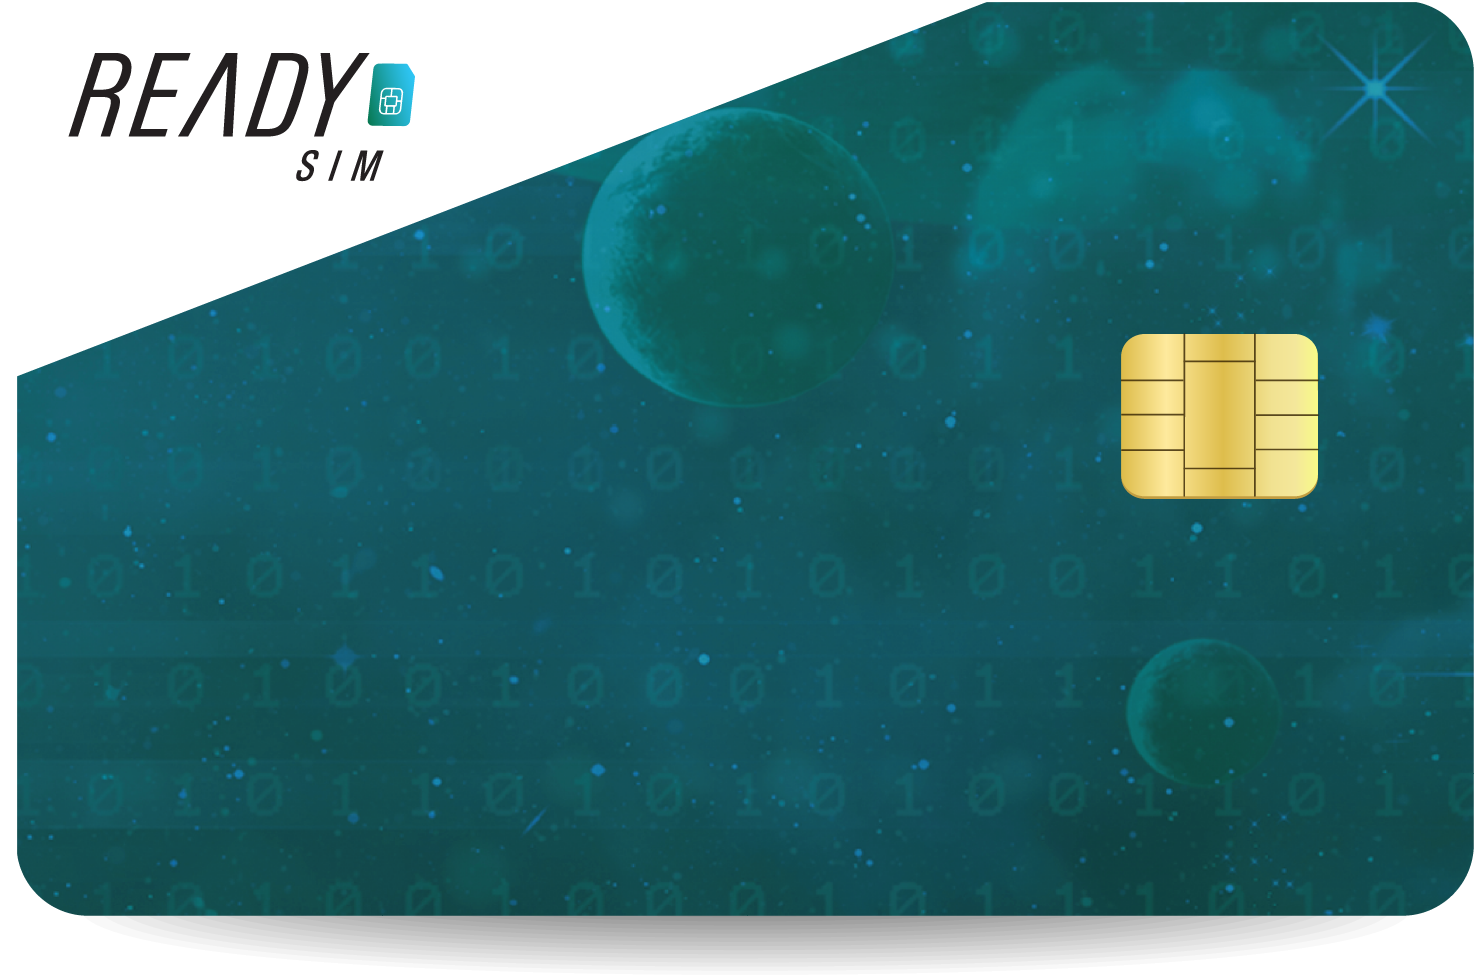 Ready SIM provides simple, affordable coverage that scales with your company.